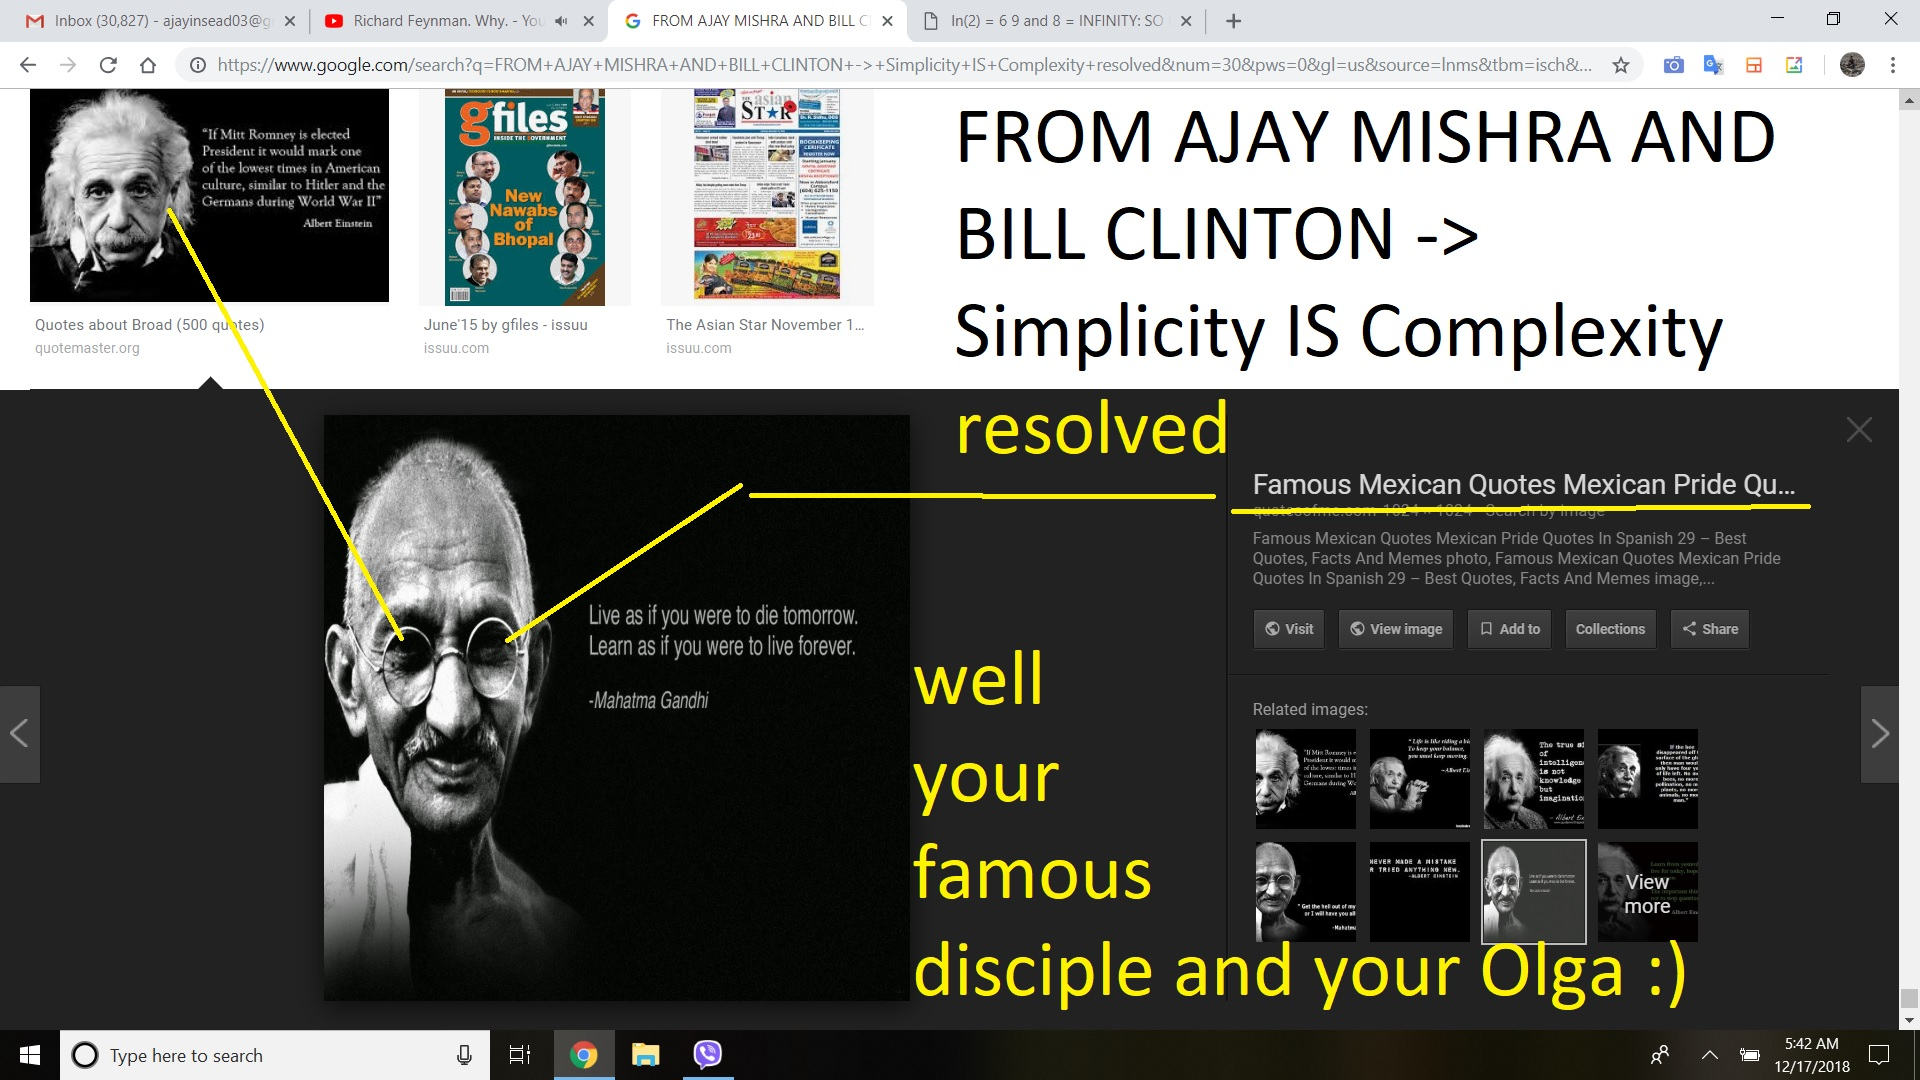 FROM AJAY MISHRA AND BILL CLINTON Simplicity IS Complexity resolved